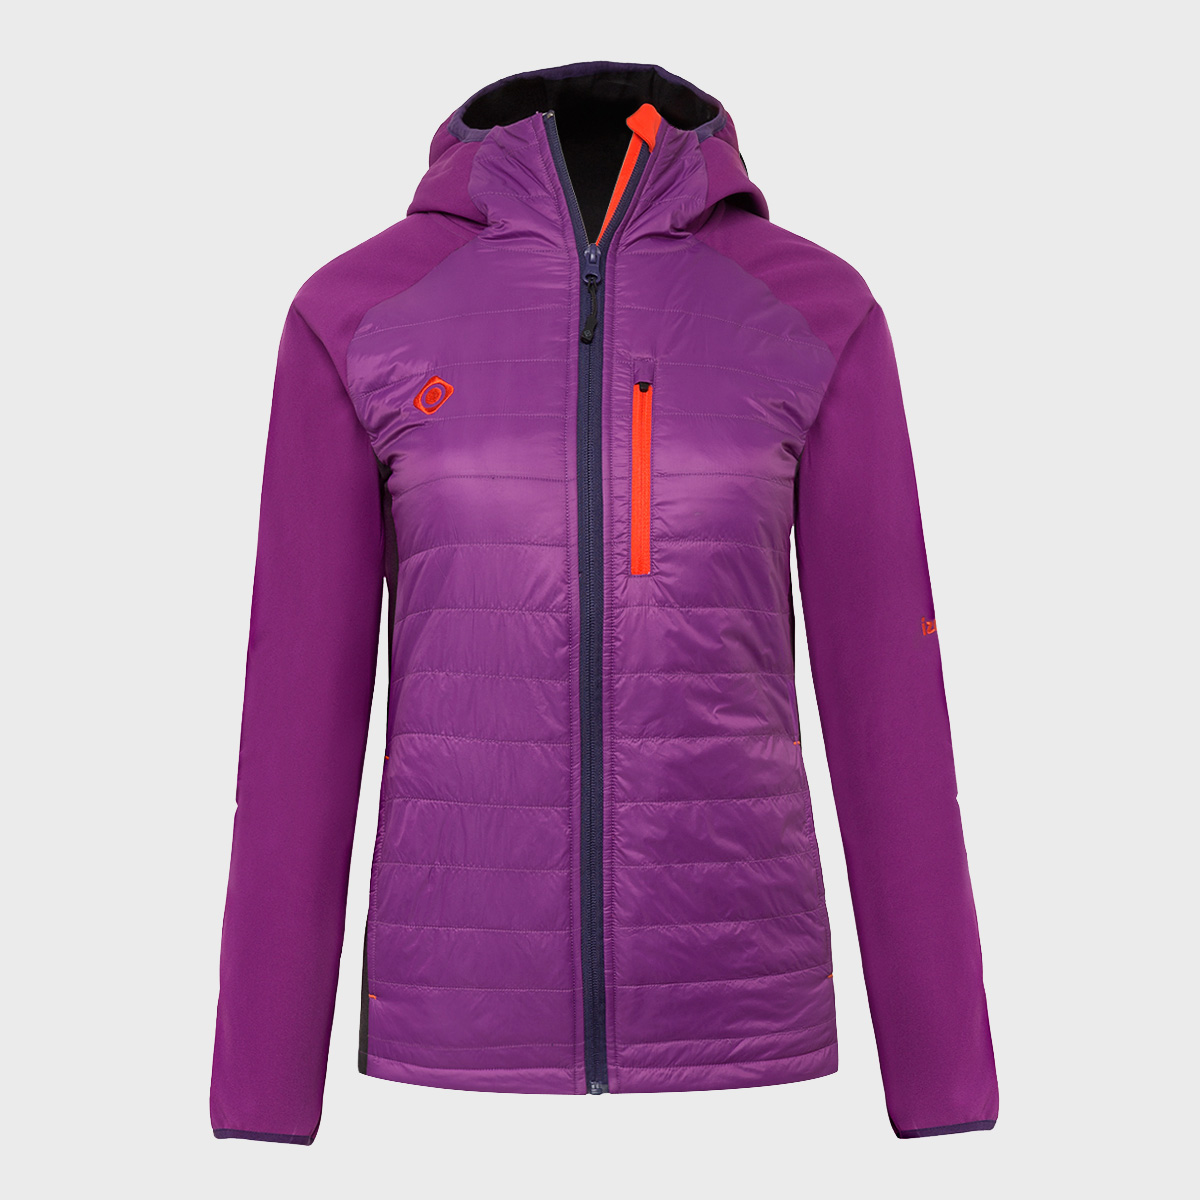 WOMAN'S ABIERI SOFT SHELL+PADDED PURPLE